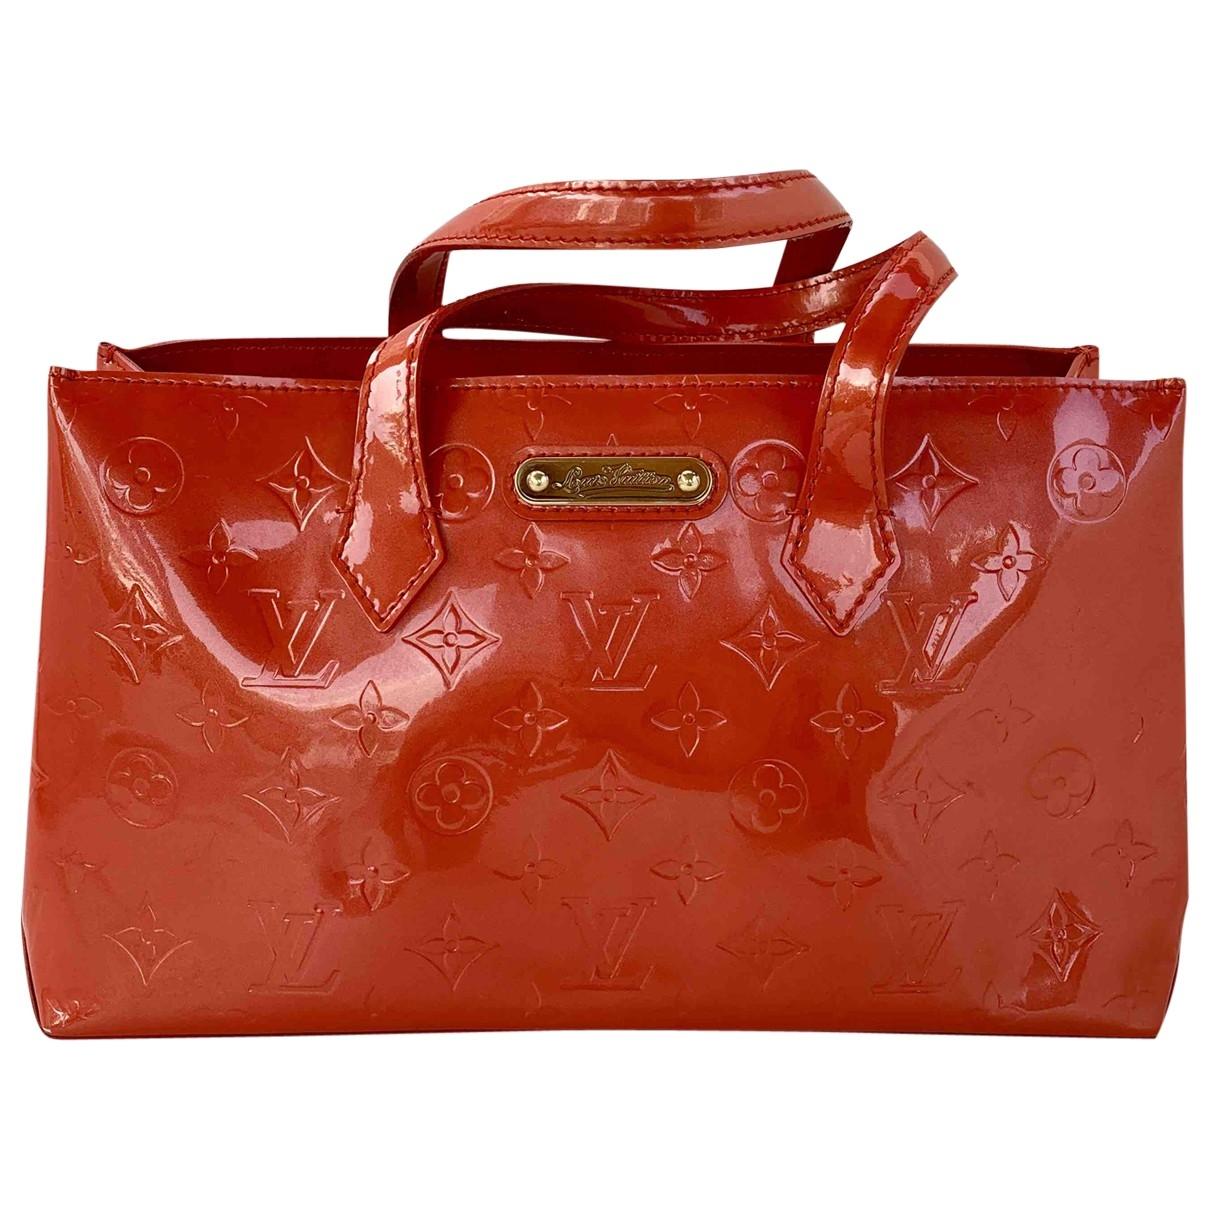 Louis Vuitton Wilshire Orange Patent leather handbag for Women \N